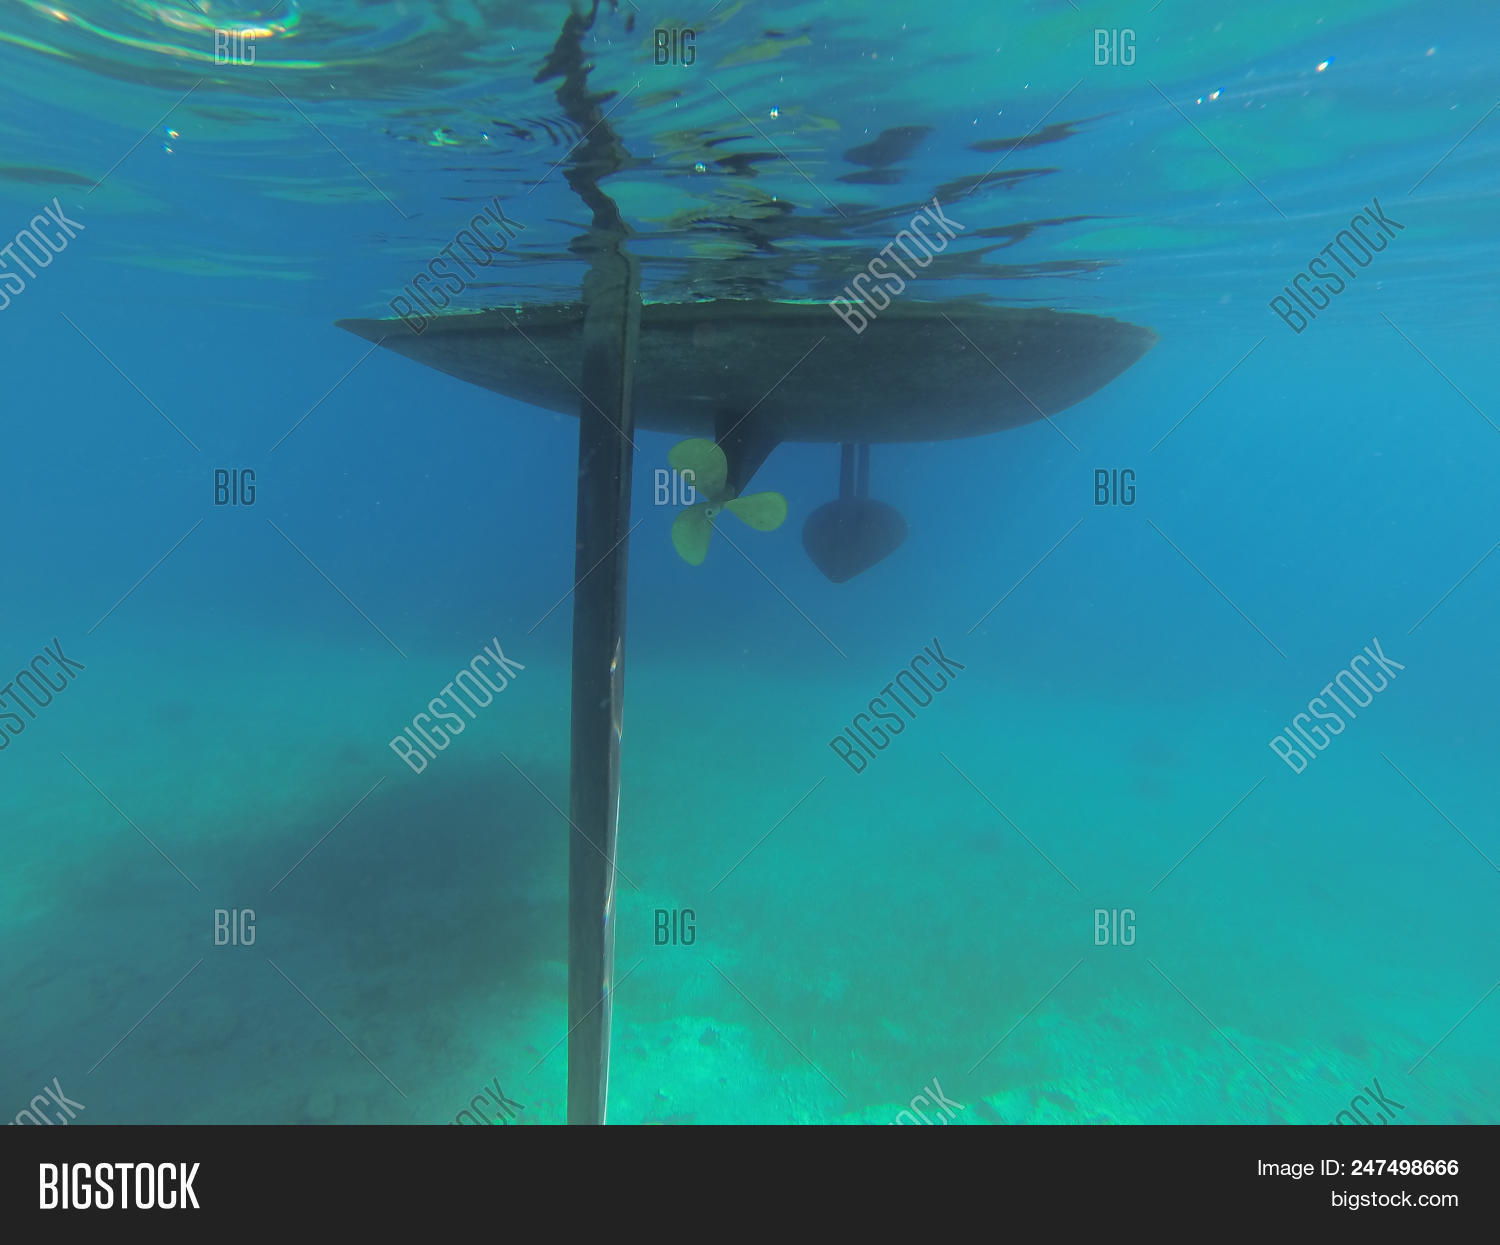 Underwater Parts Image & Photo (Free Trial) | Bigstock